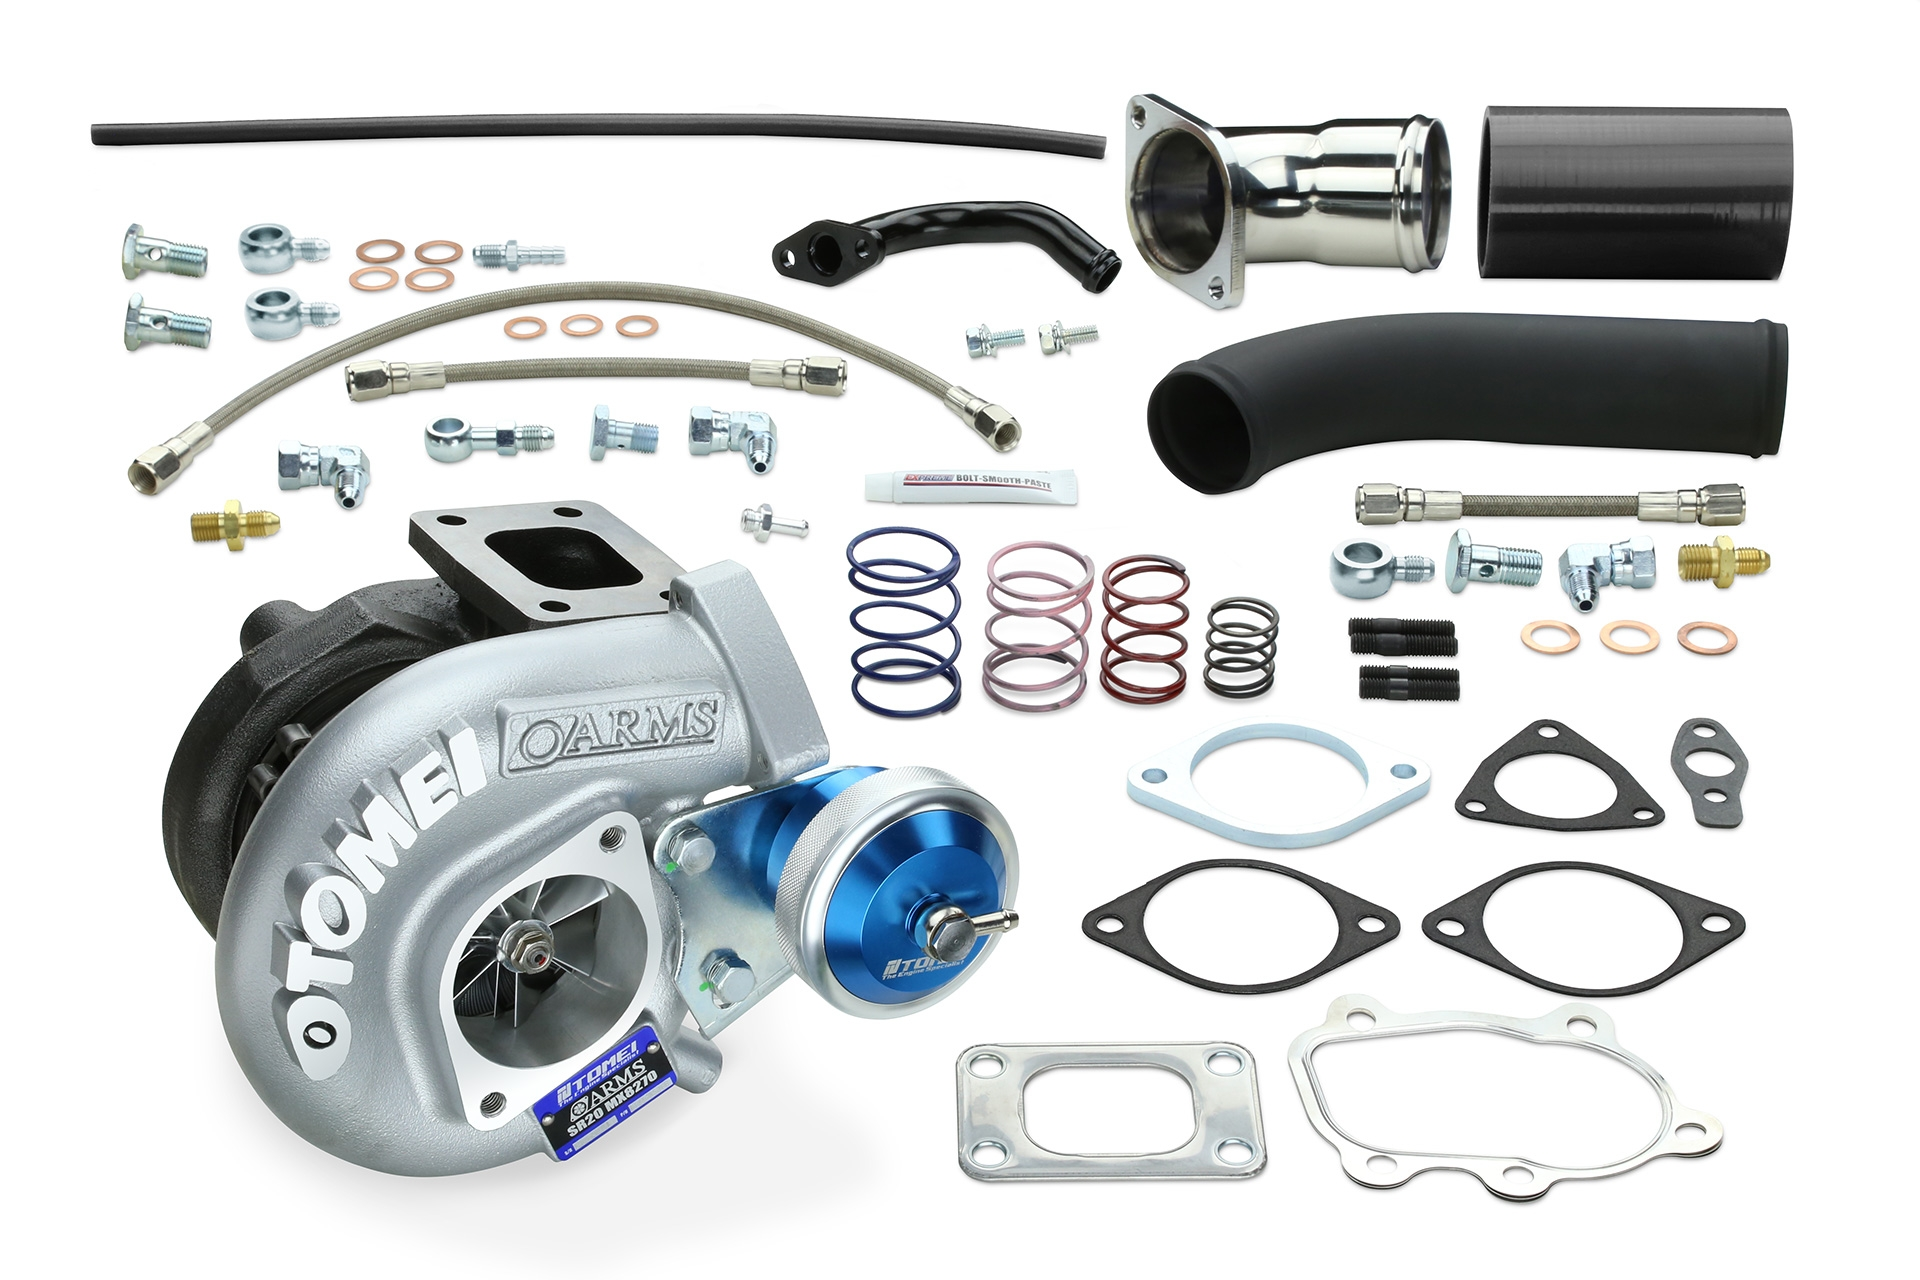 Tomei Turbocharger Kit Arms MX7960 SR20DET